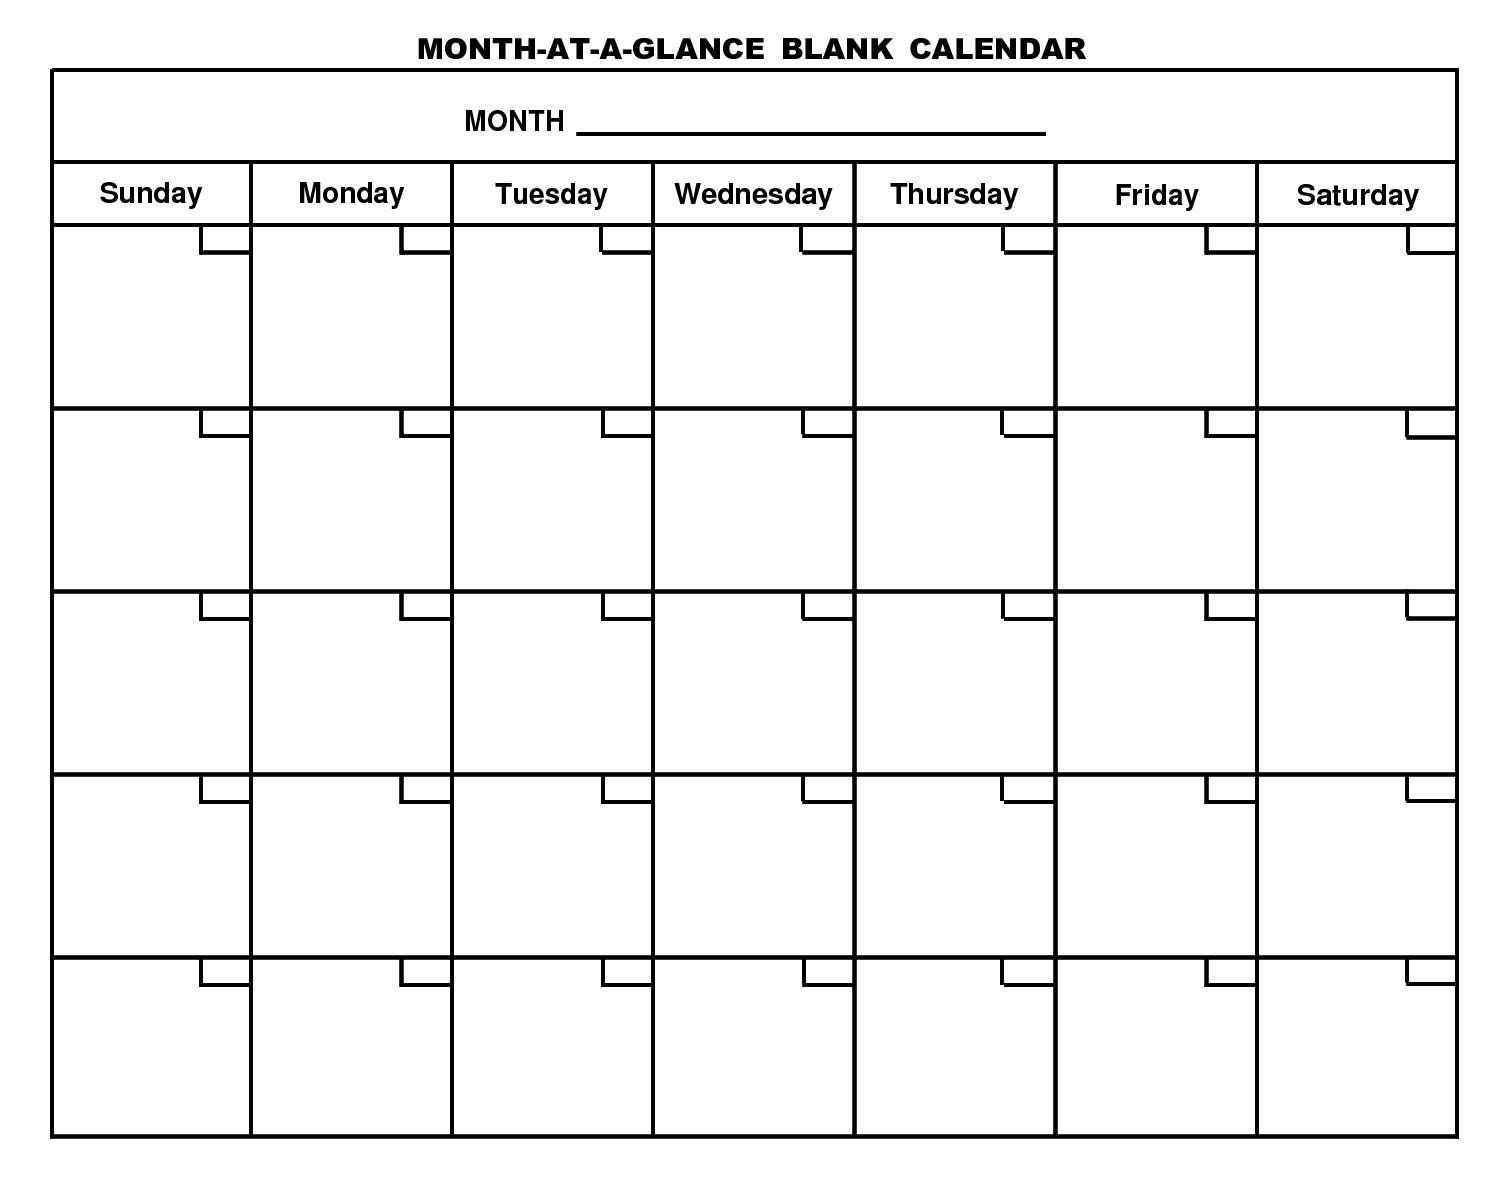 Free Printable Monthly Calendar With Large Boxes Skymaps-Month At A Glance Blank Calendar